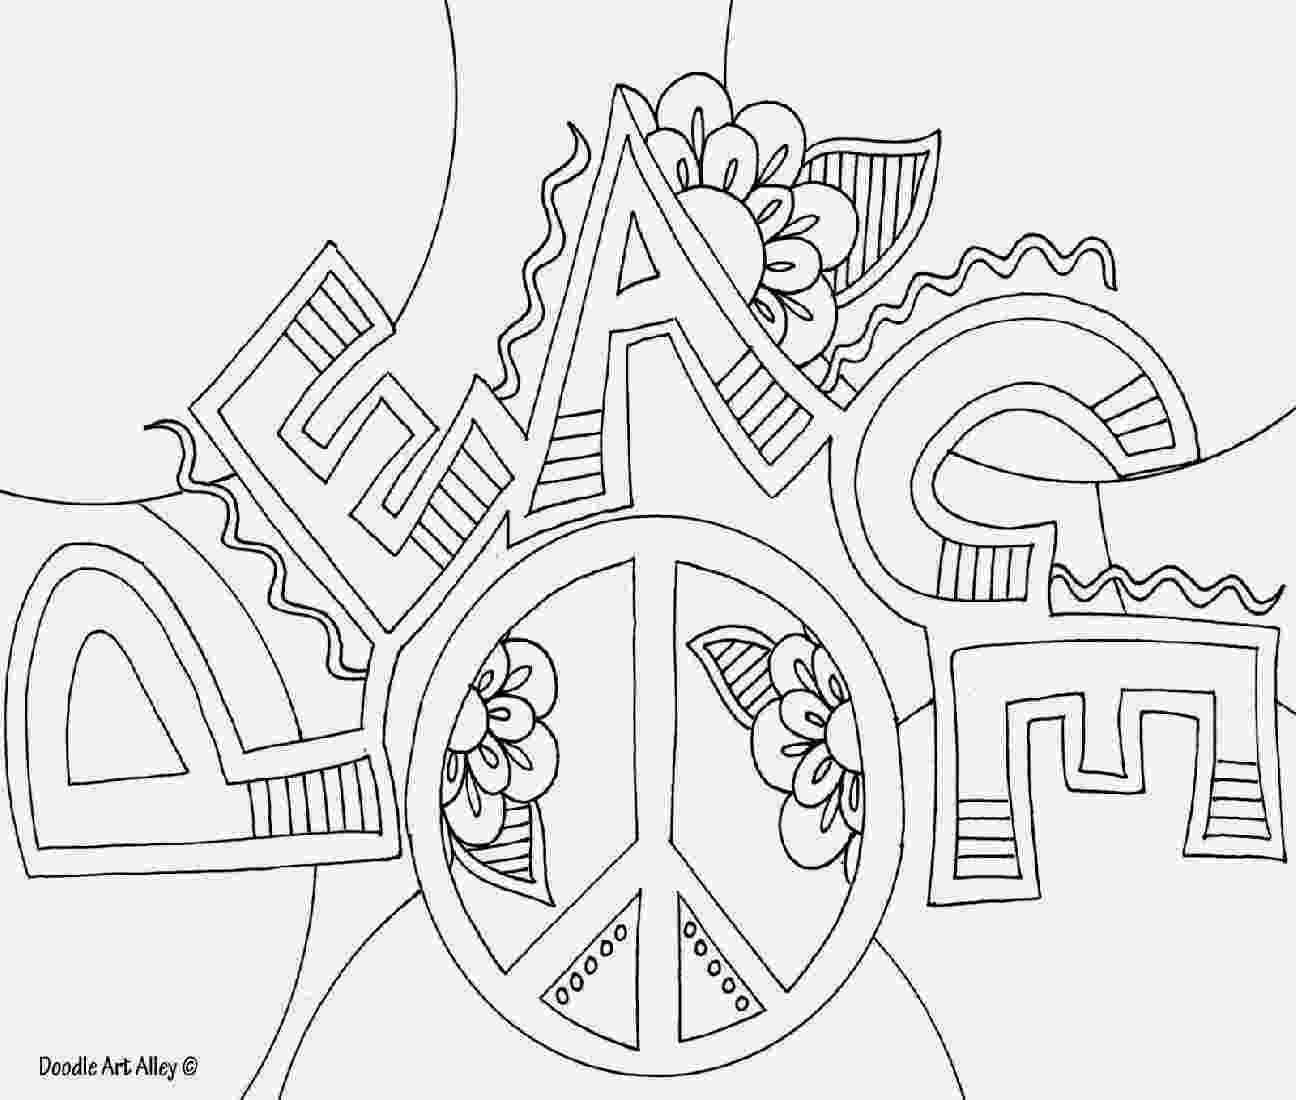 awesome coloring pictures 48 cool boy coloring pages coloring pages coloring pages pictures awesome coloring